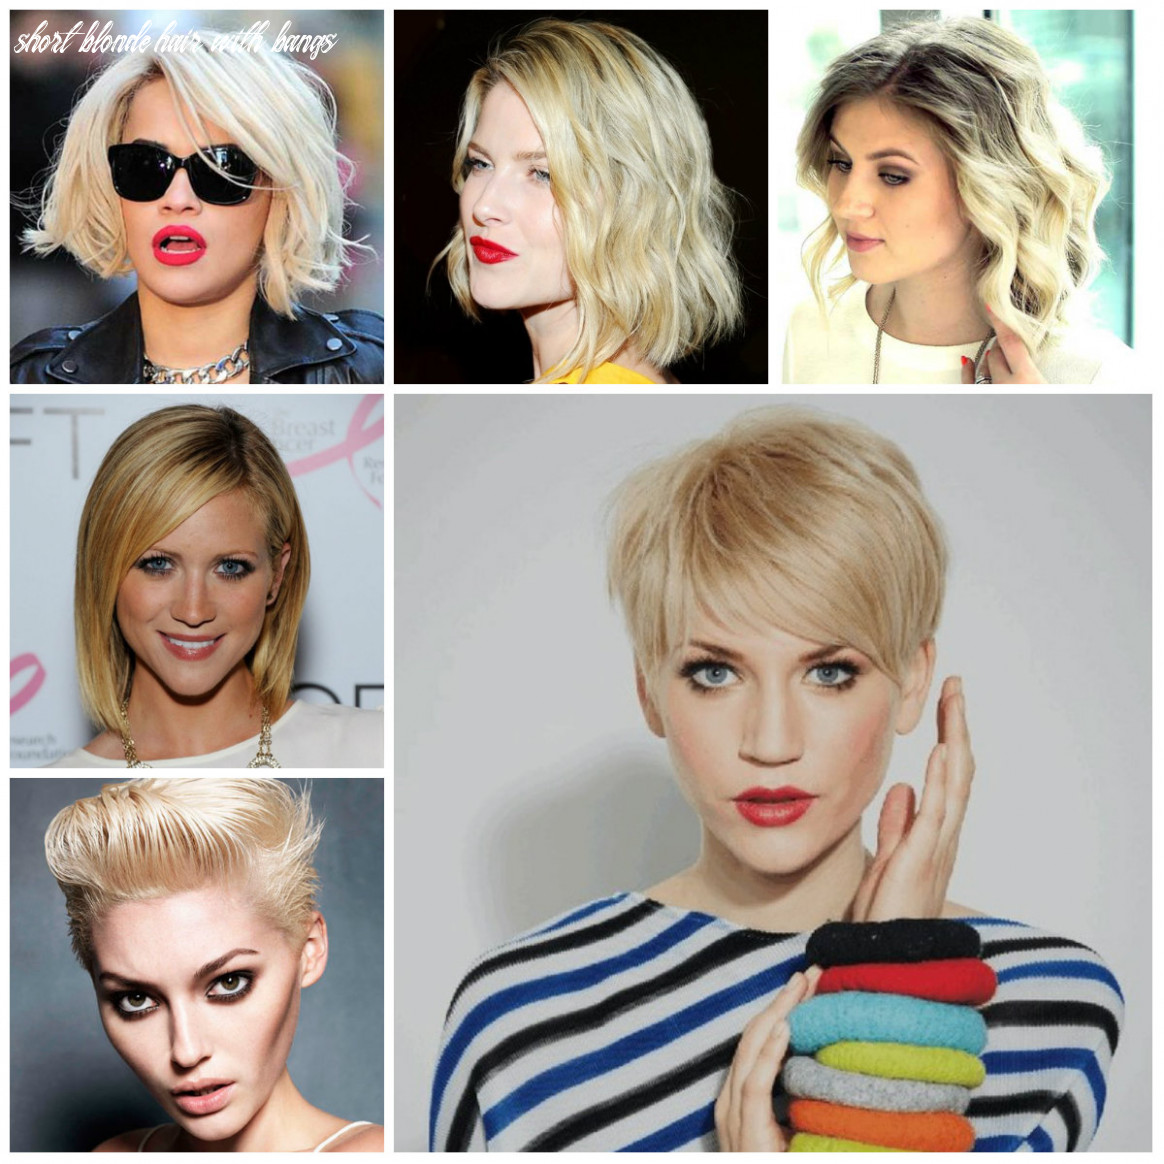 Short blonde hairstyle inspiration for 9   9 haircuts